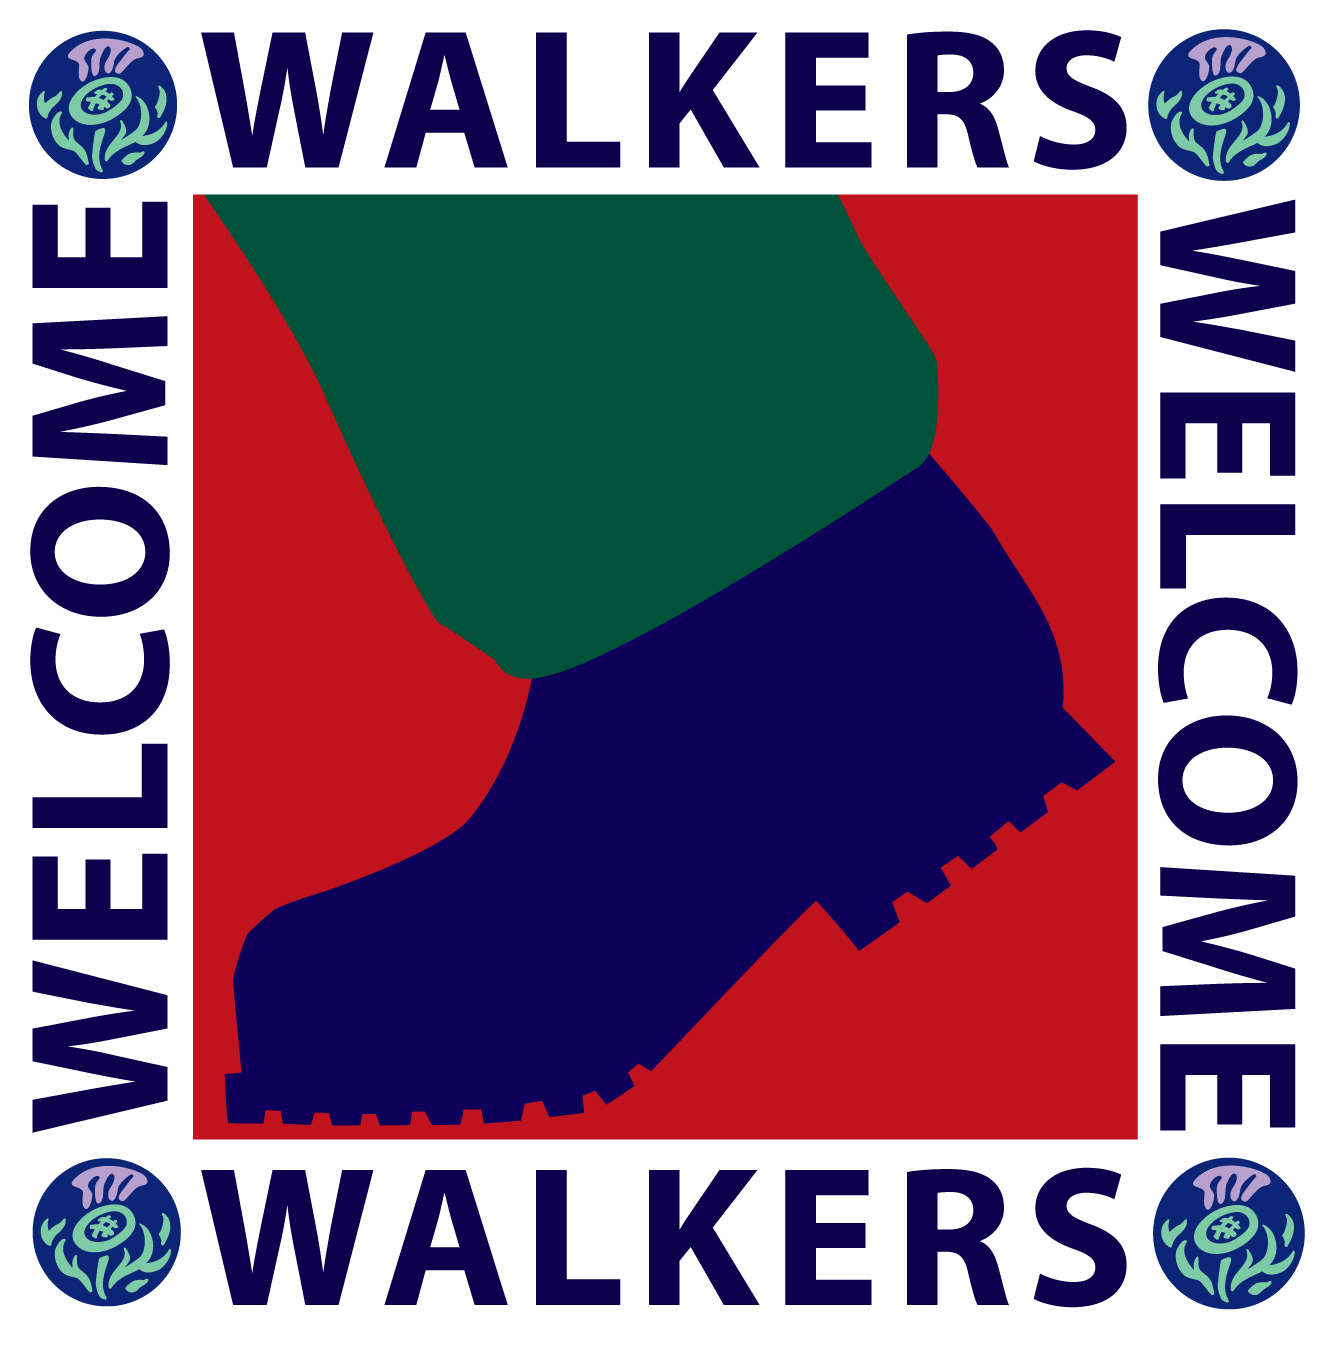 Walkers Welcome Scheme Logo.jpg